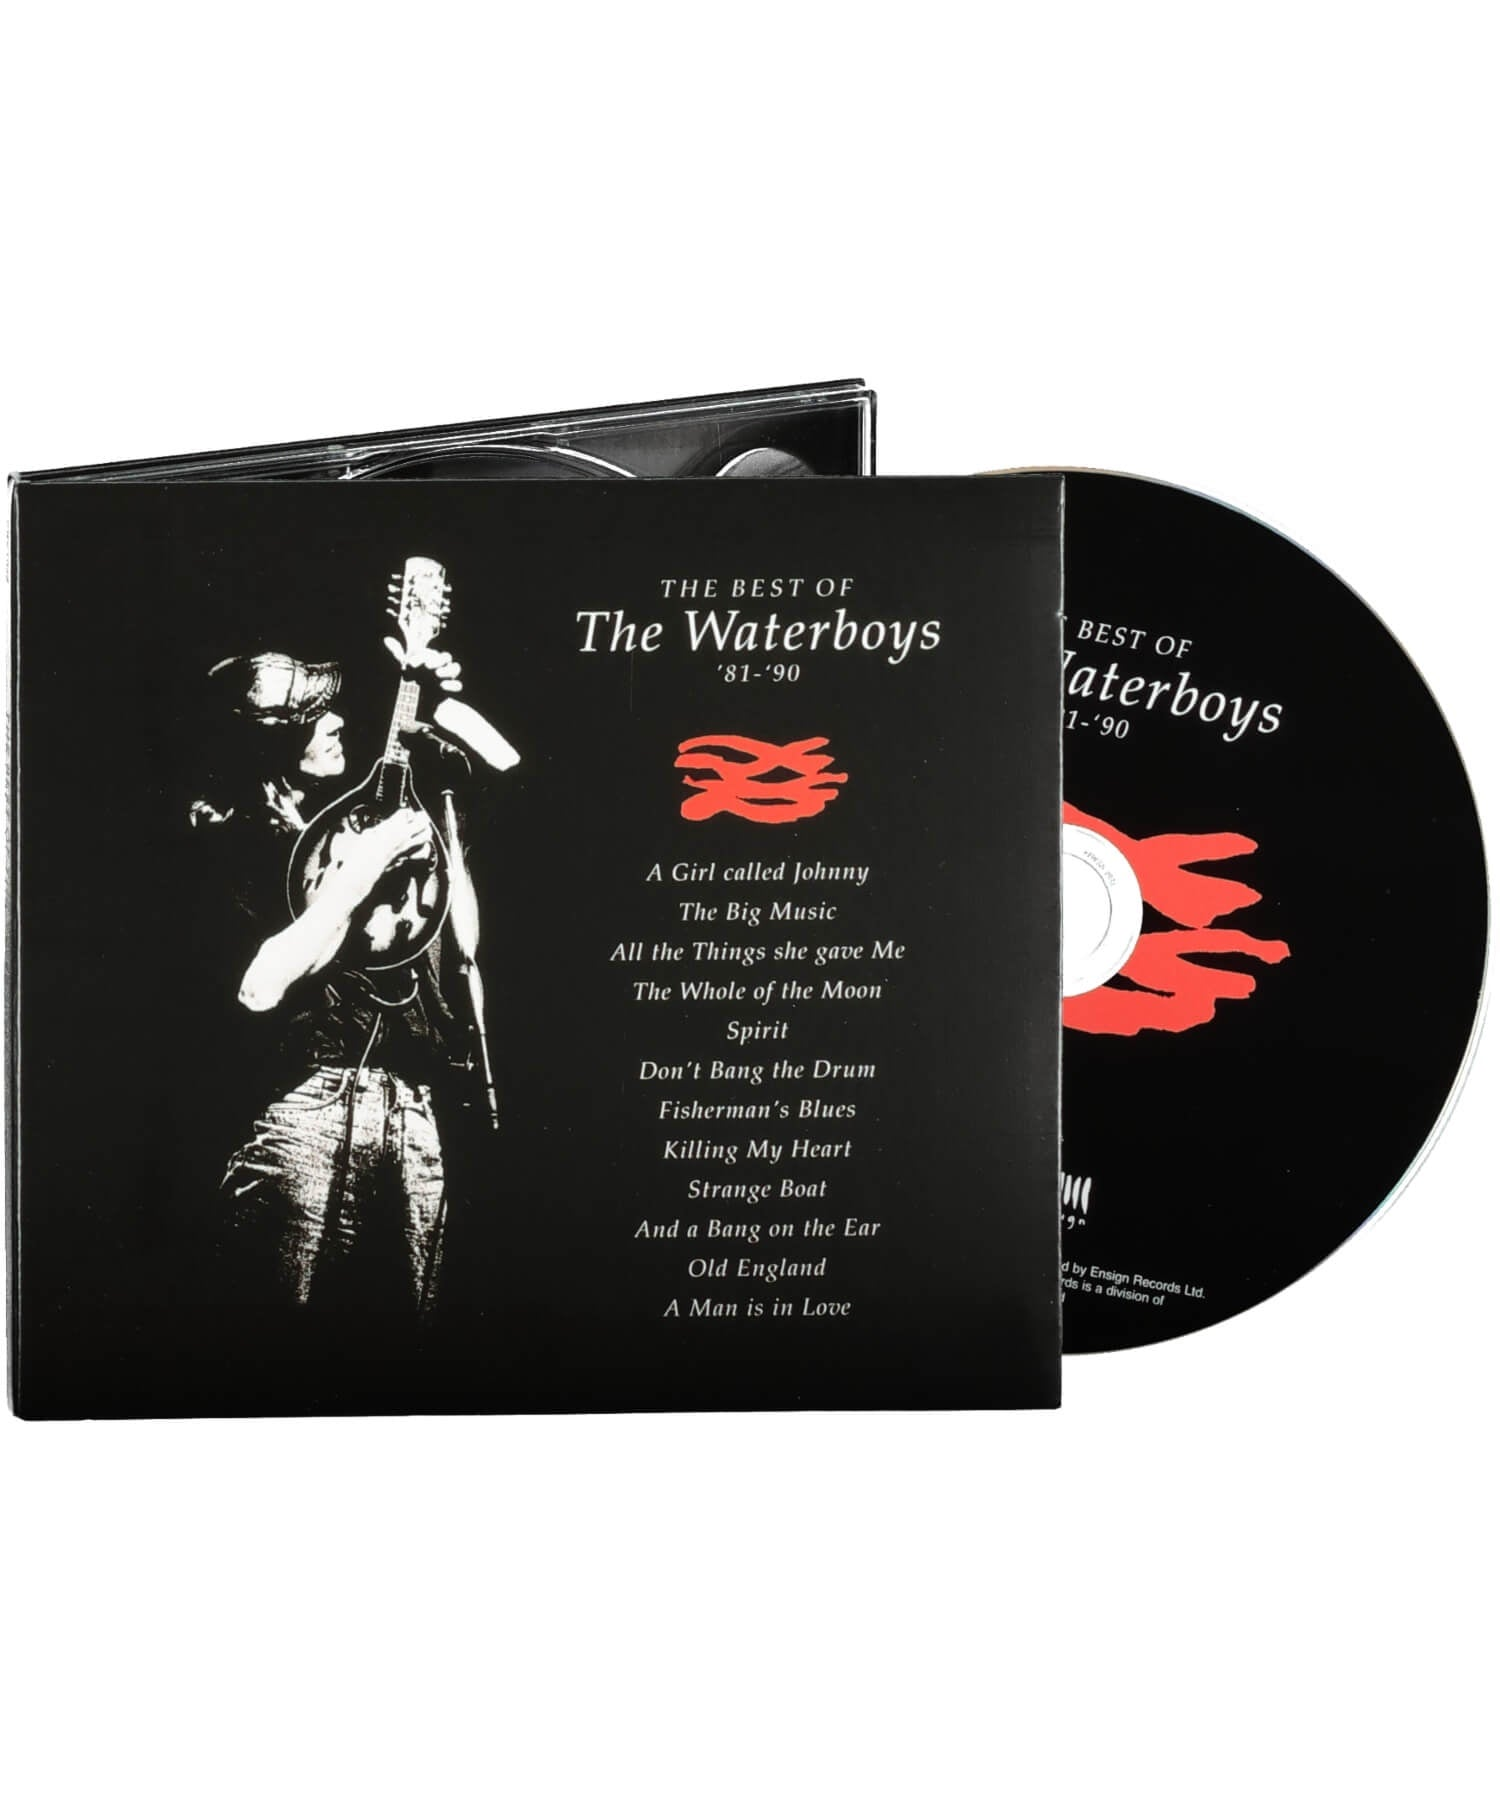 The Best of the Waterboys - [Ceol] - Music - Irish Gifts